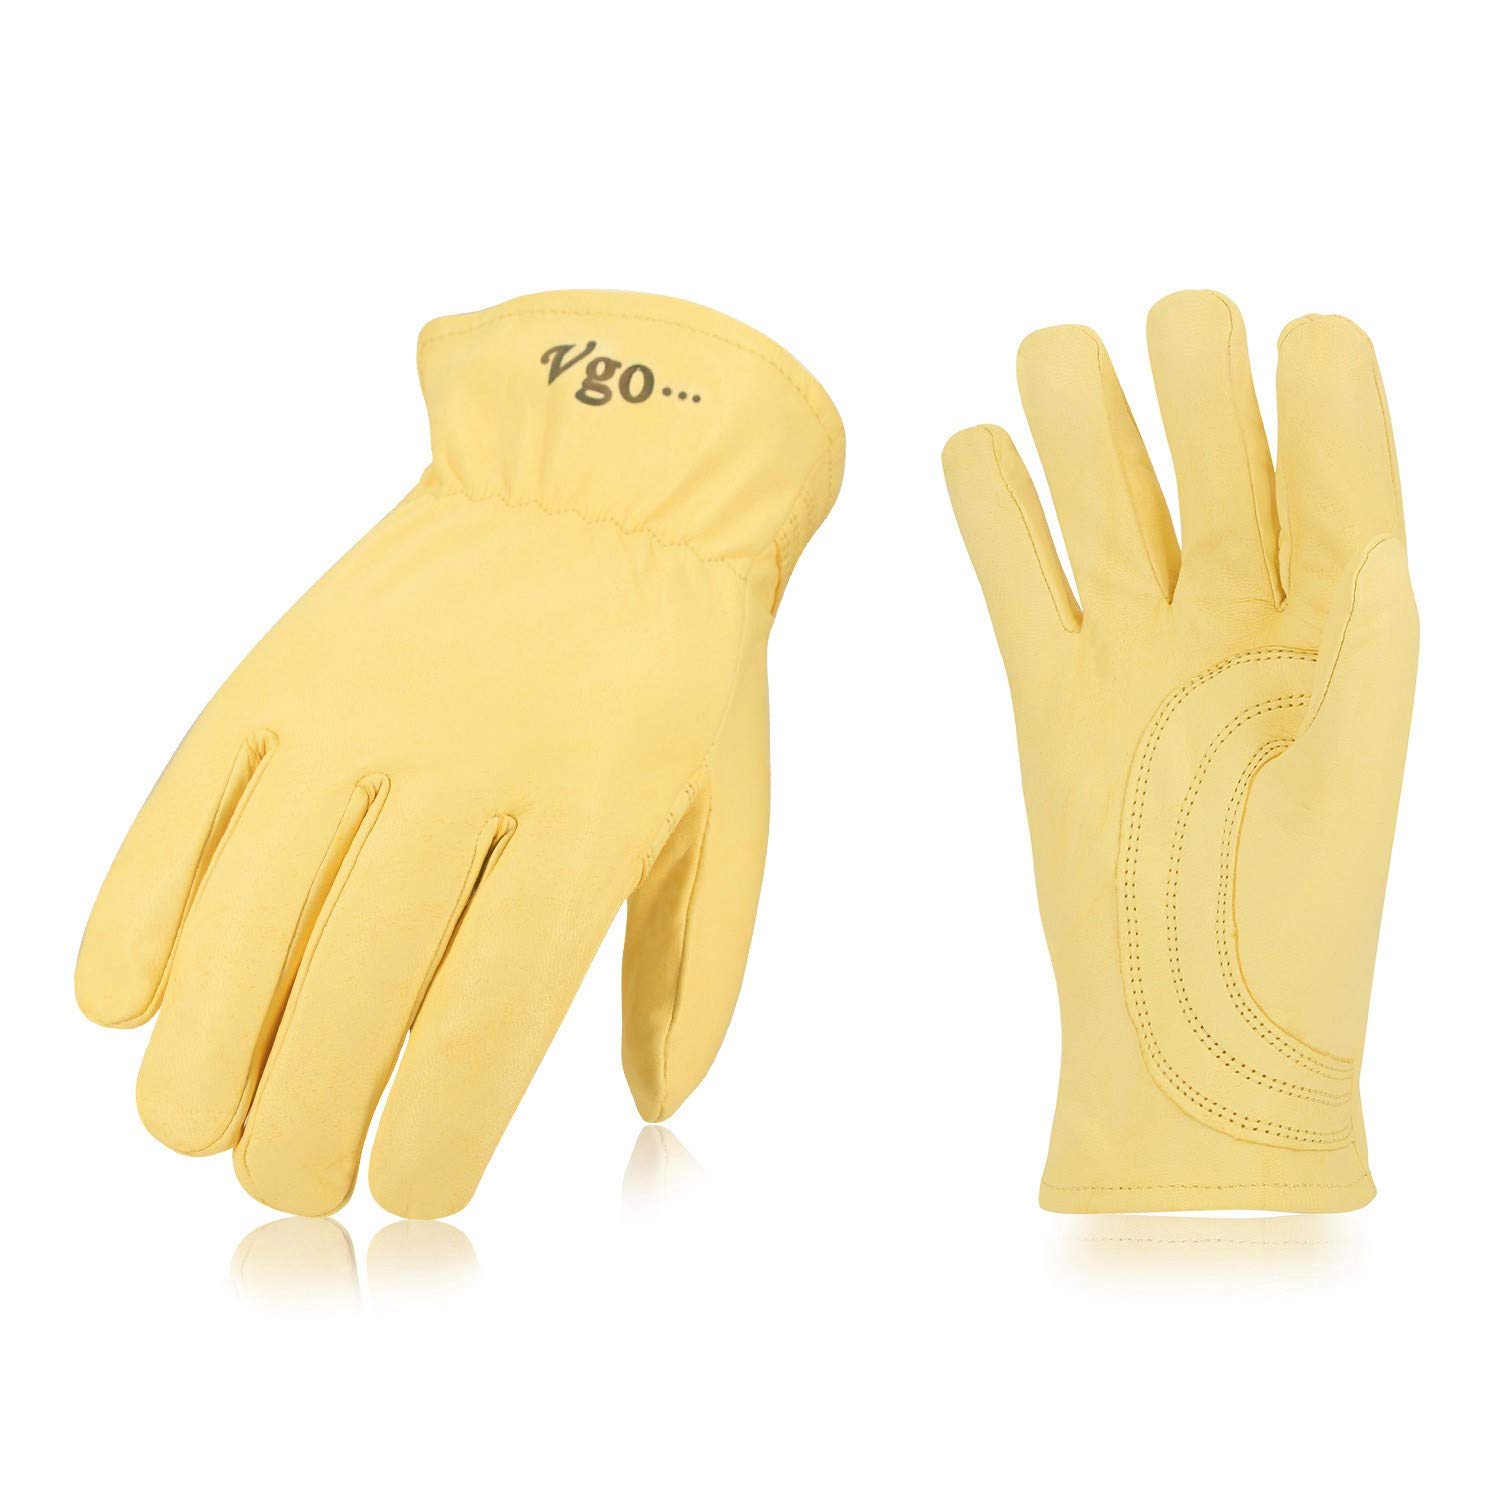 Vgo… Unlined Top Grain Goatskin Work and Driver Gloves with Palm Patch (2Pairs, Light Yellow, Size 9/L and 10/XL)